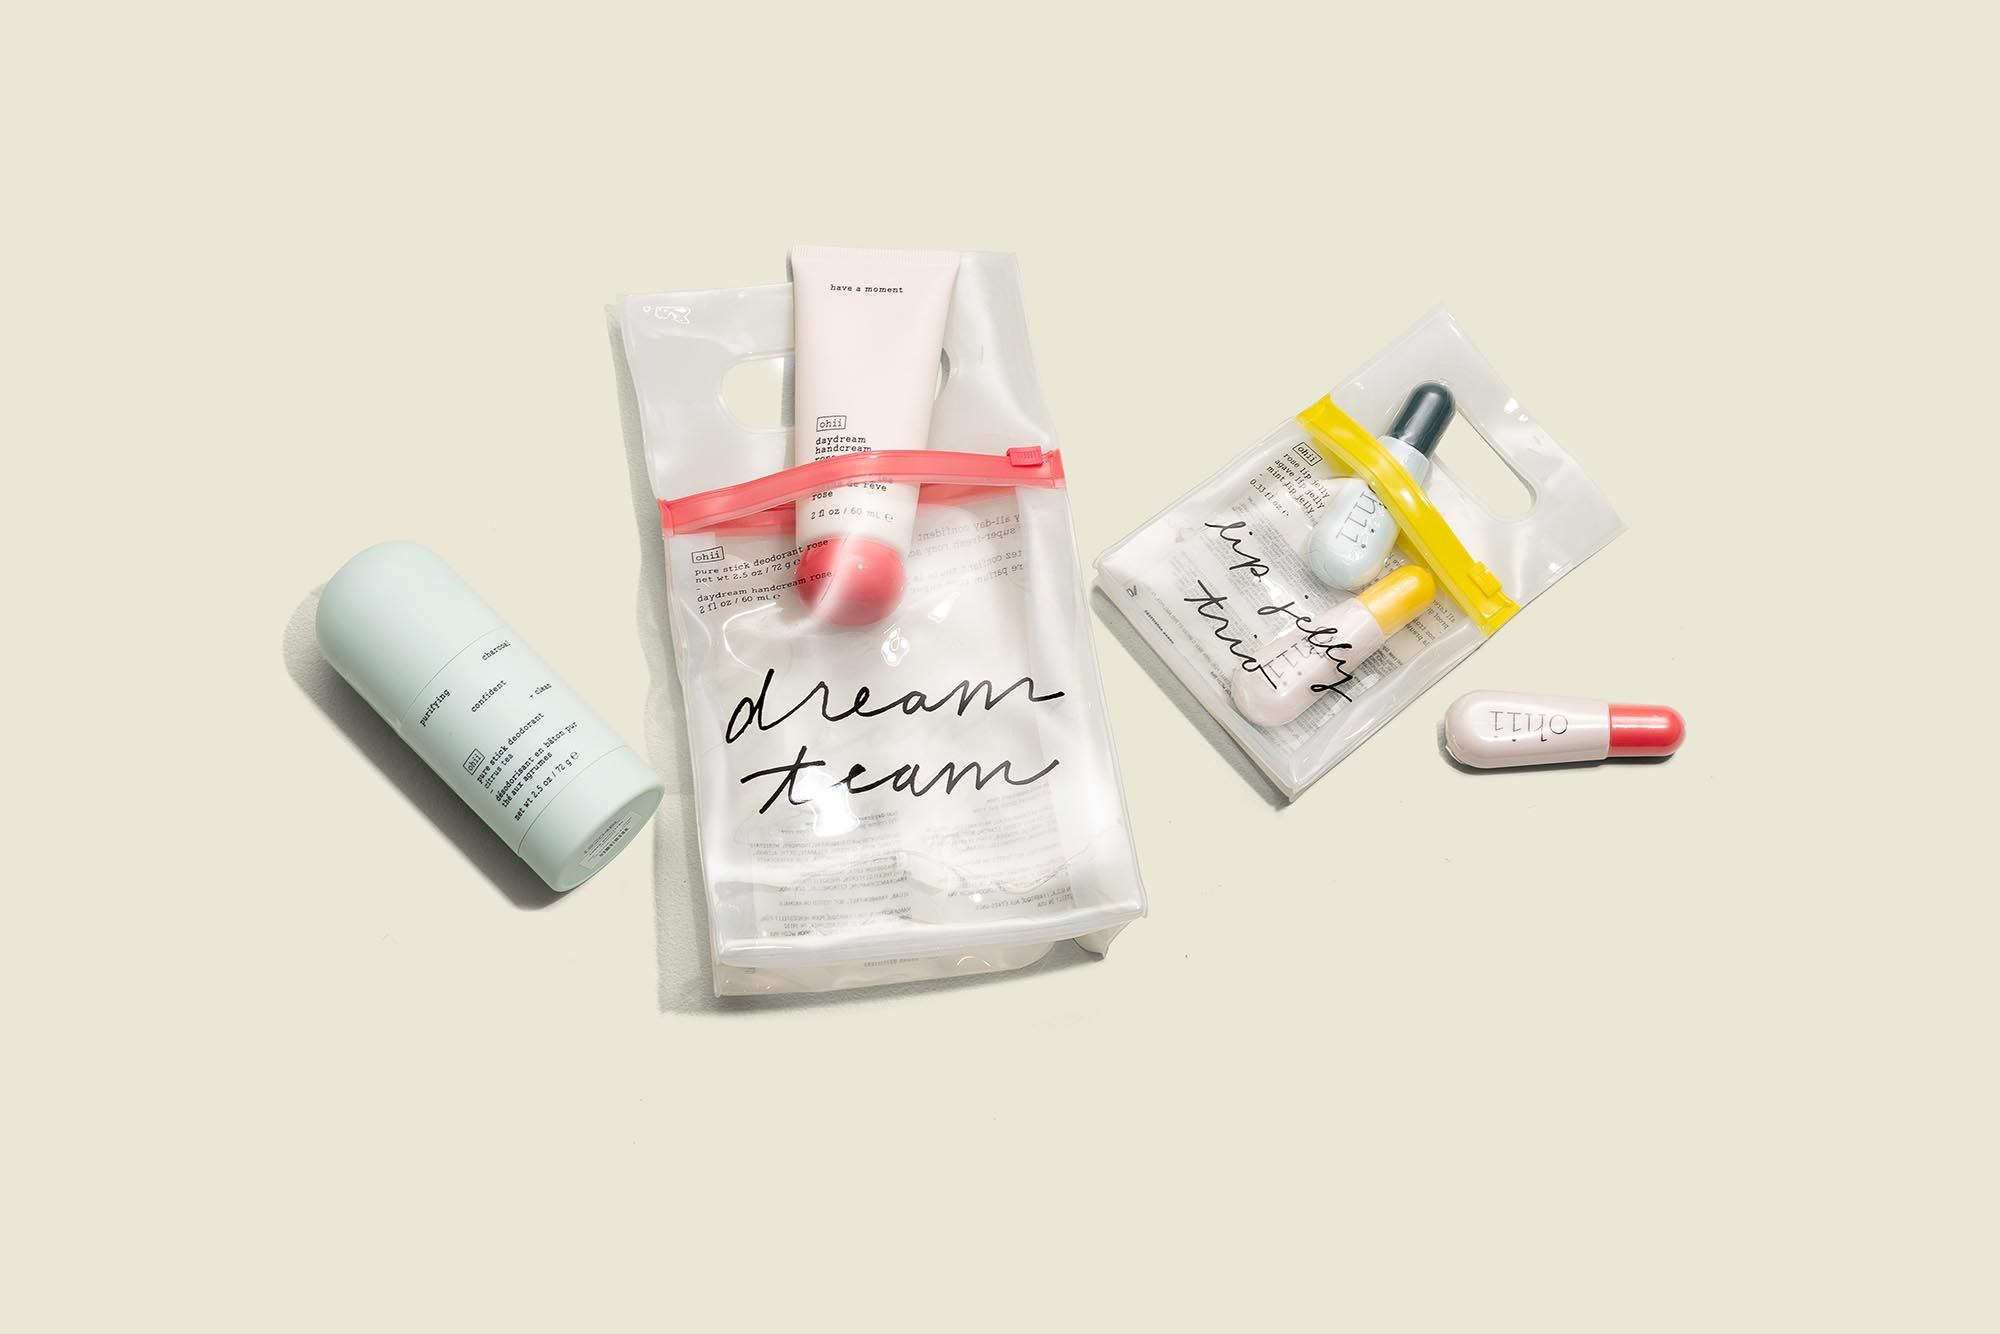 Beauty products with ziplock bags